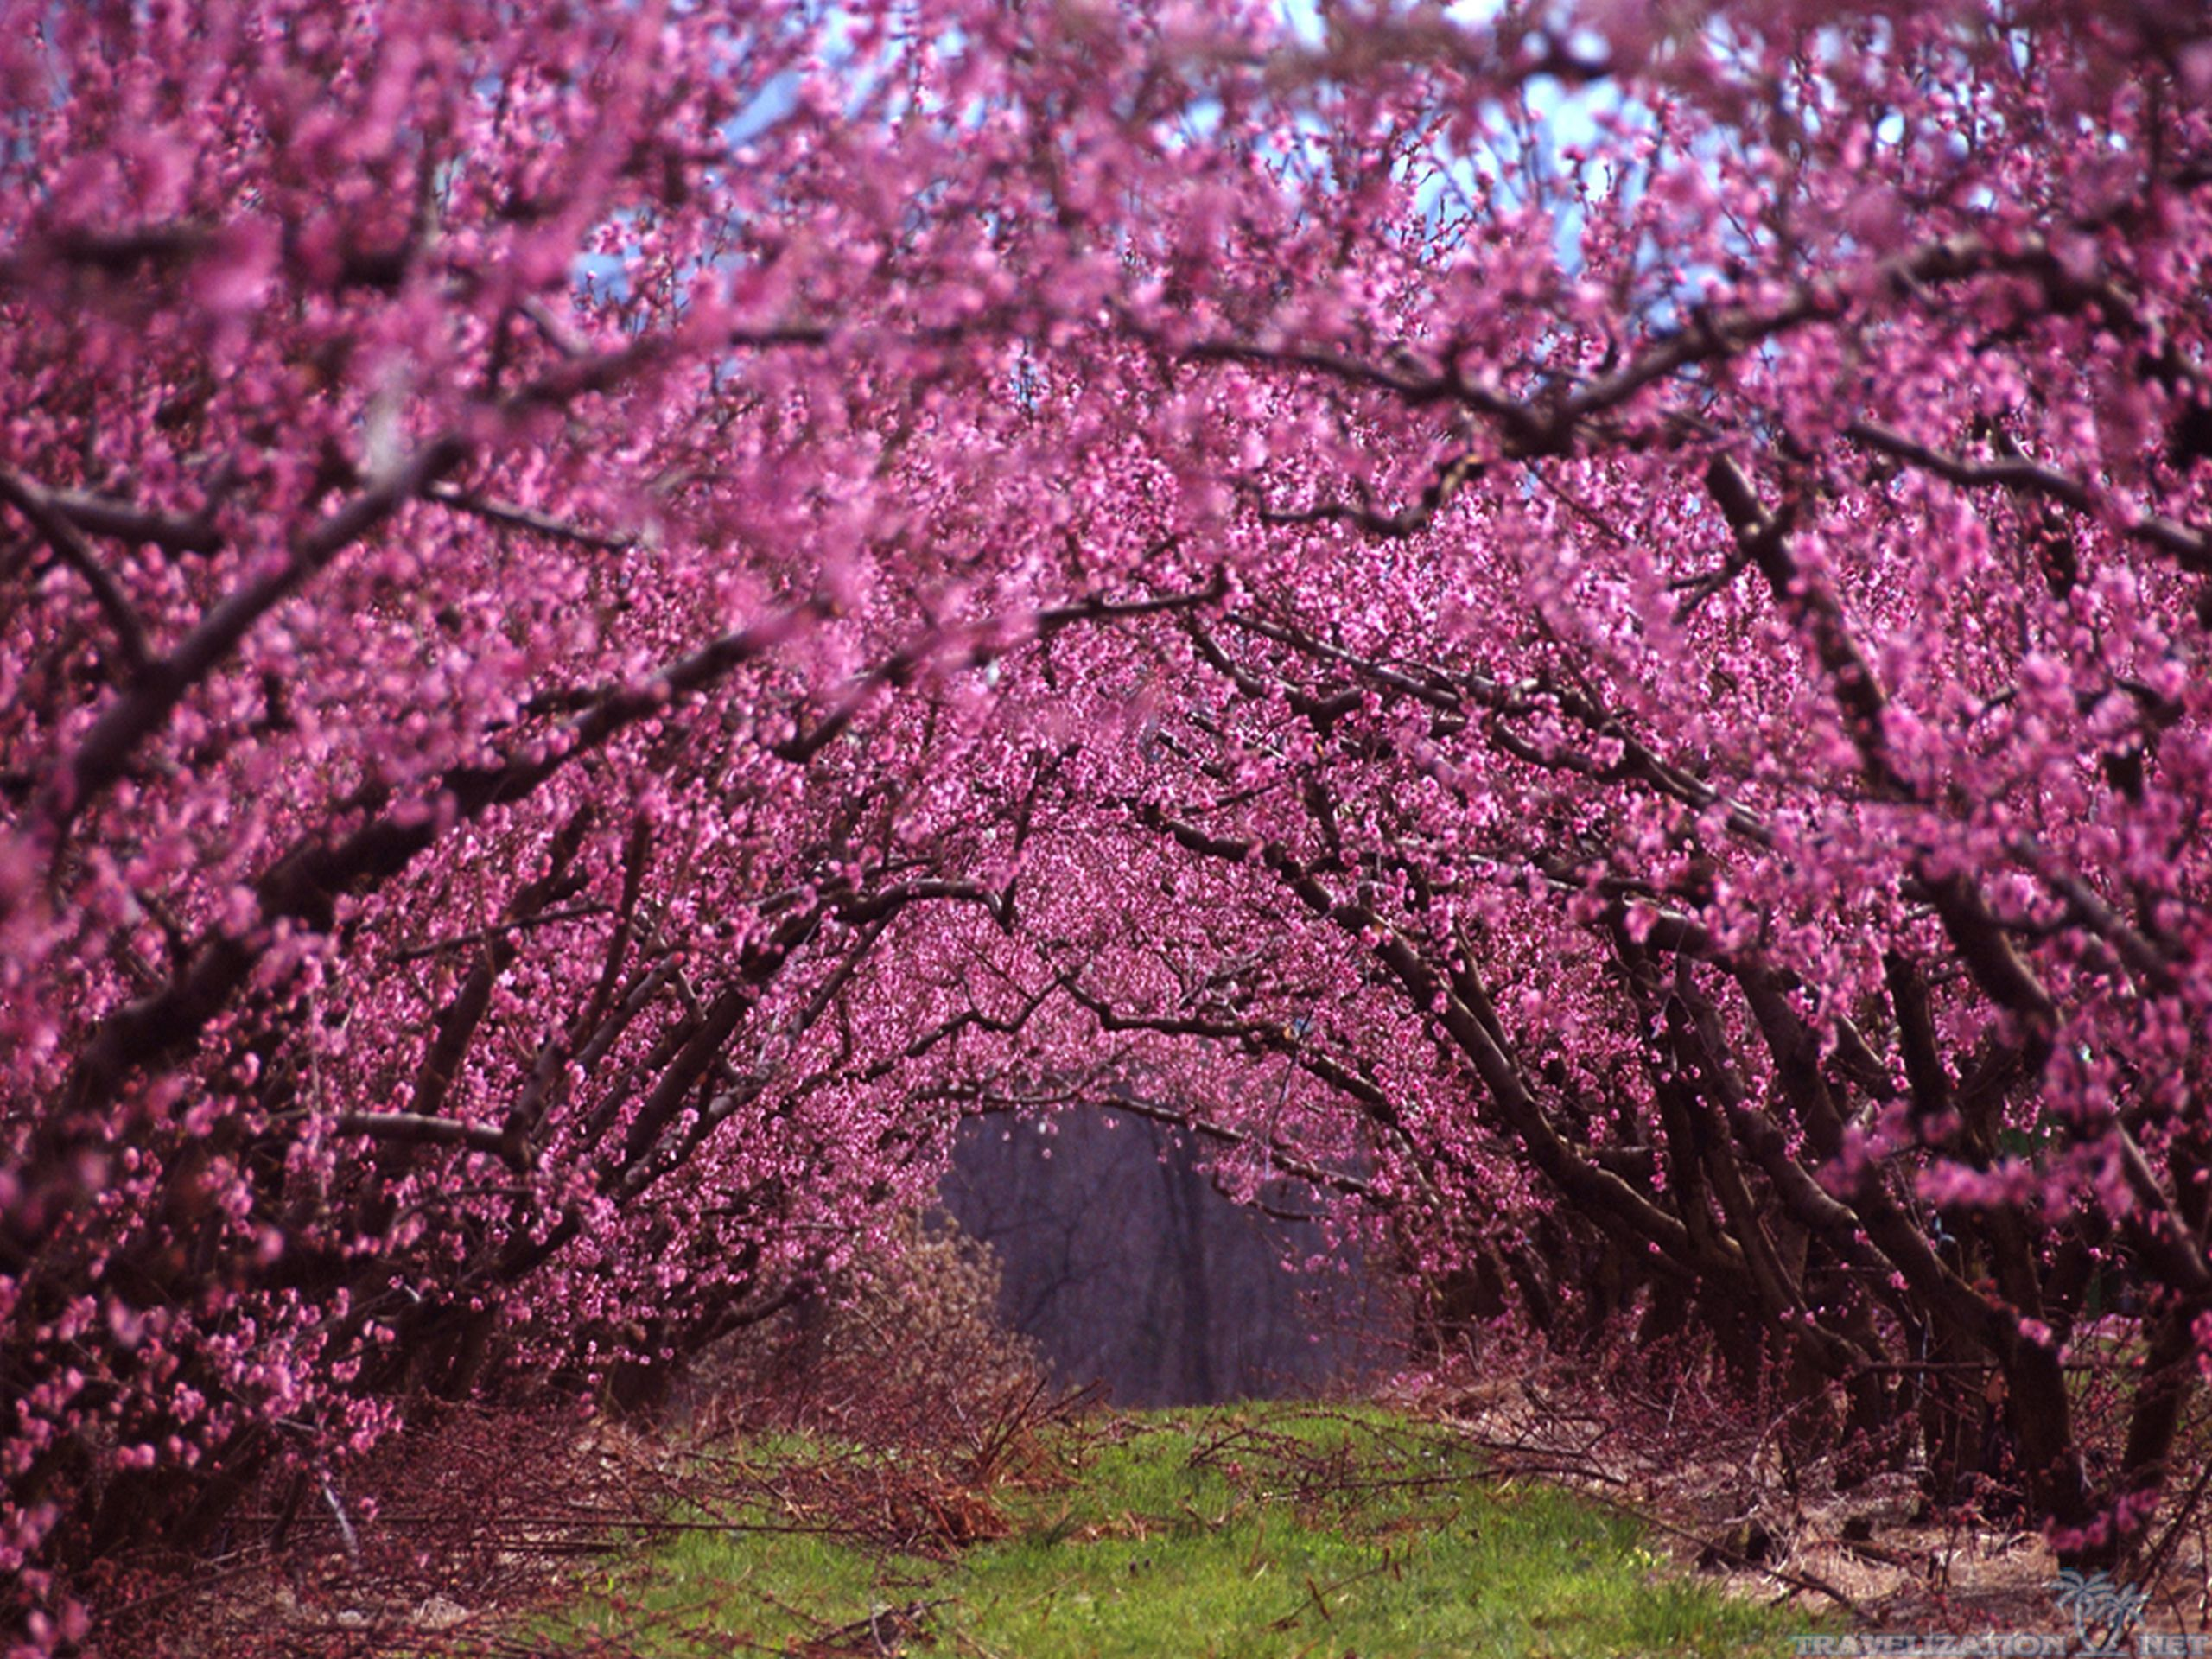 35 Beautiful Spring Pictures And Wallpapers: Beautiful Spring Scenery Wallpapers